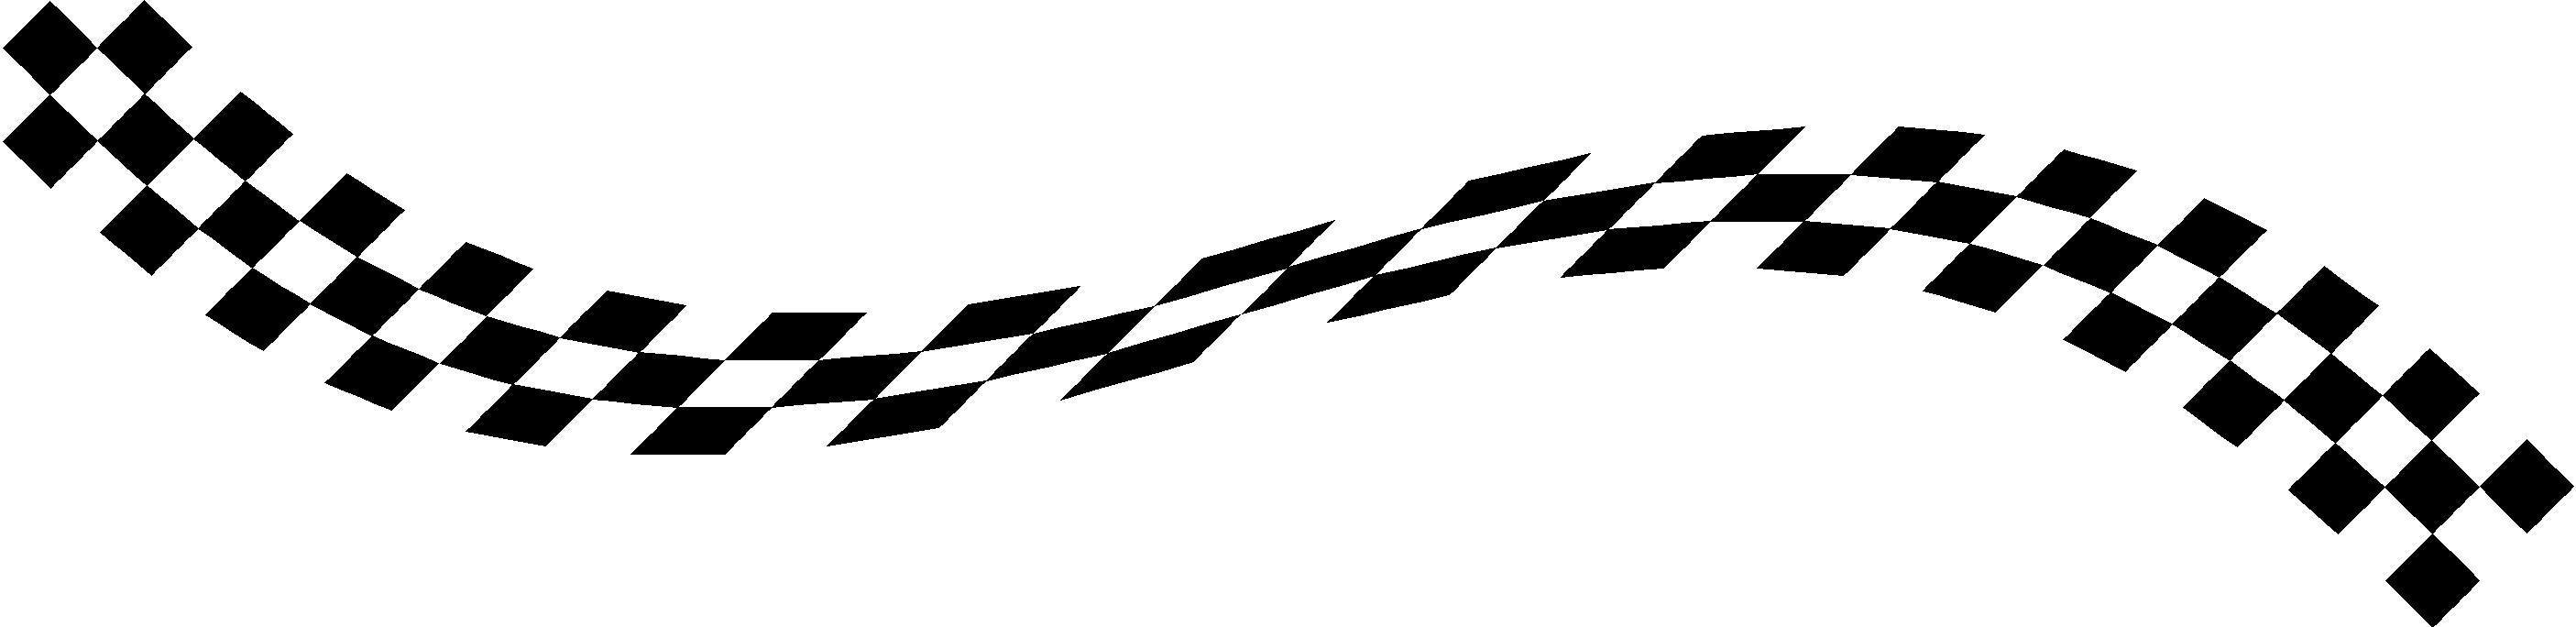 Racing Checkered Flag >> Racing Flag Border - ClipArt Best